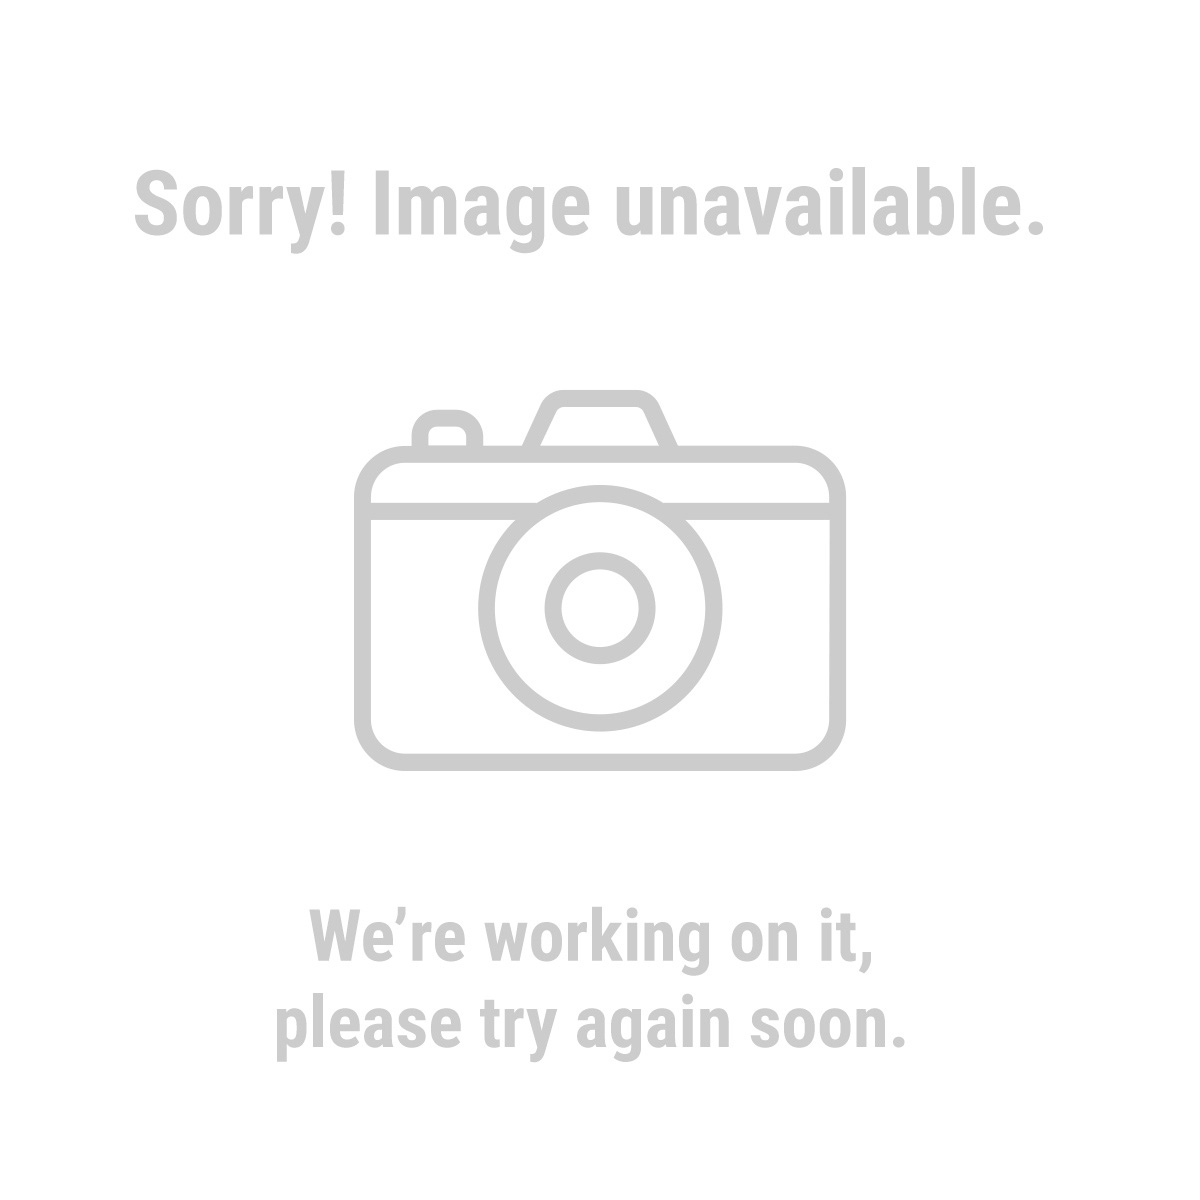 Bunker Hill Security 97004 Wireless Doorbell